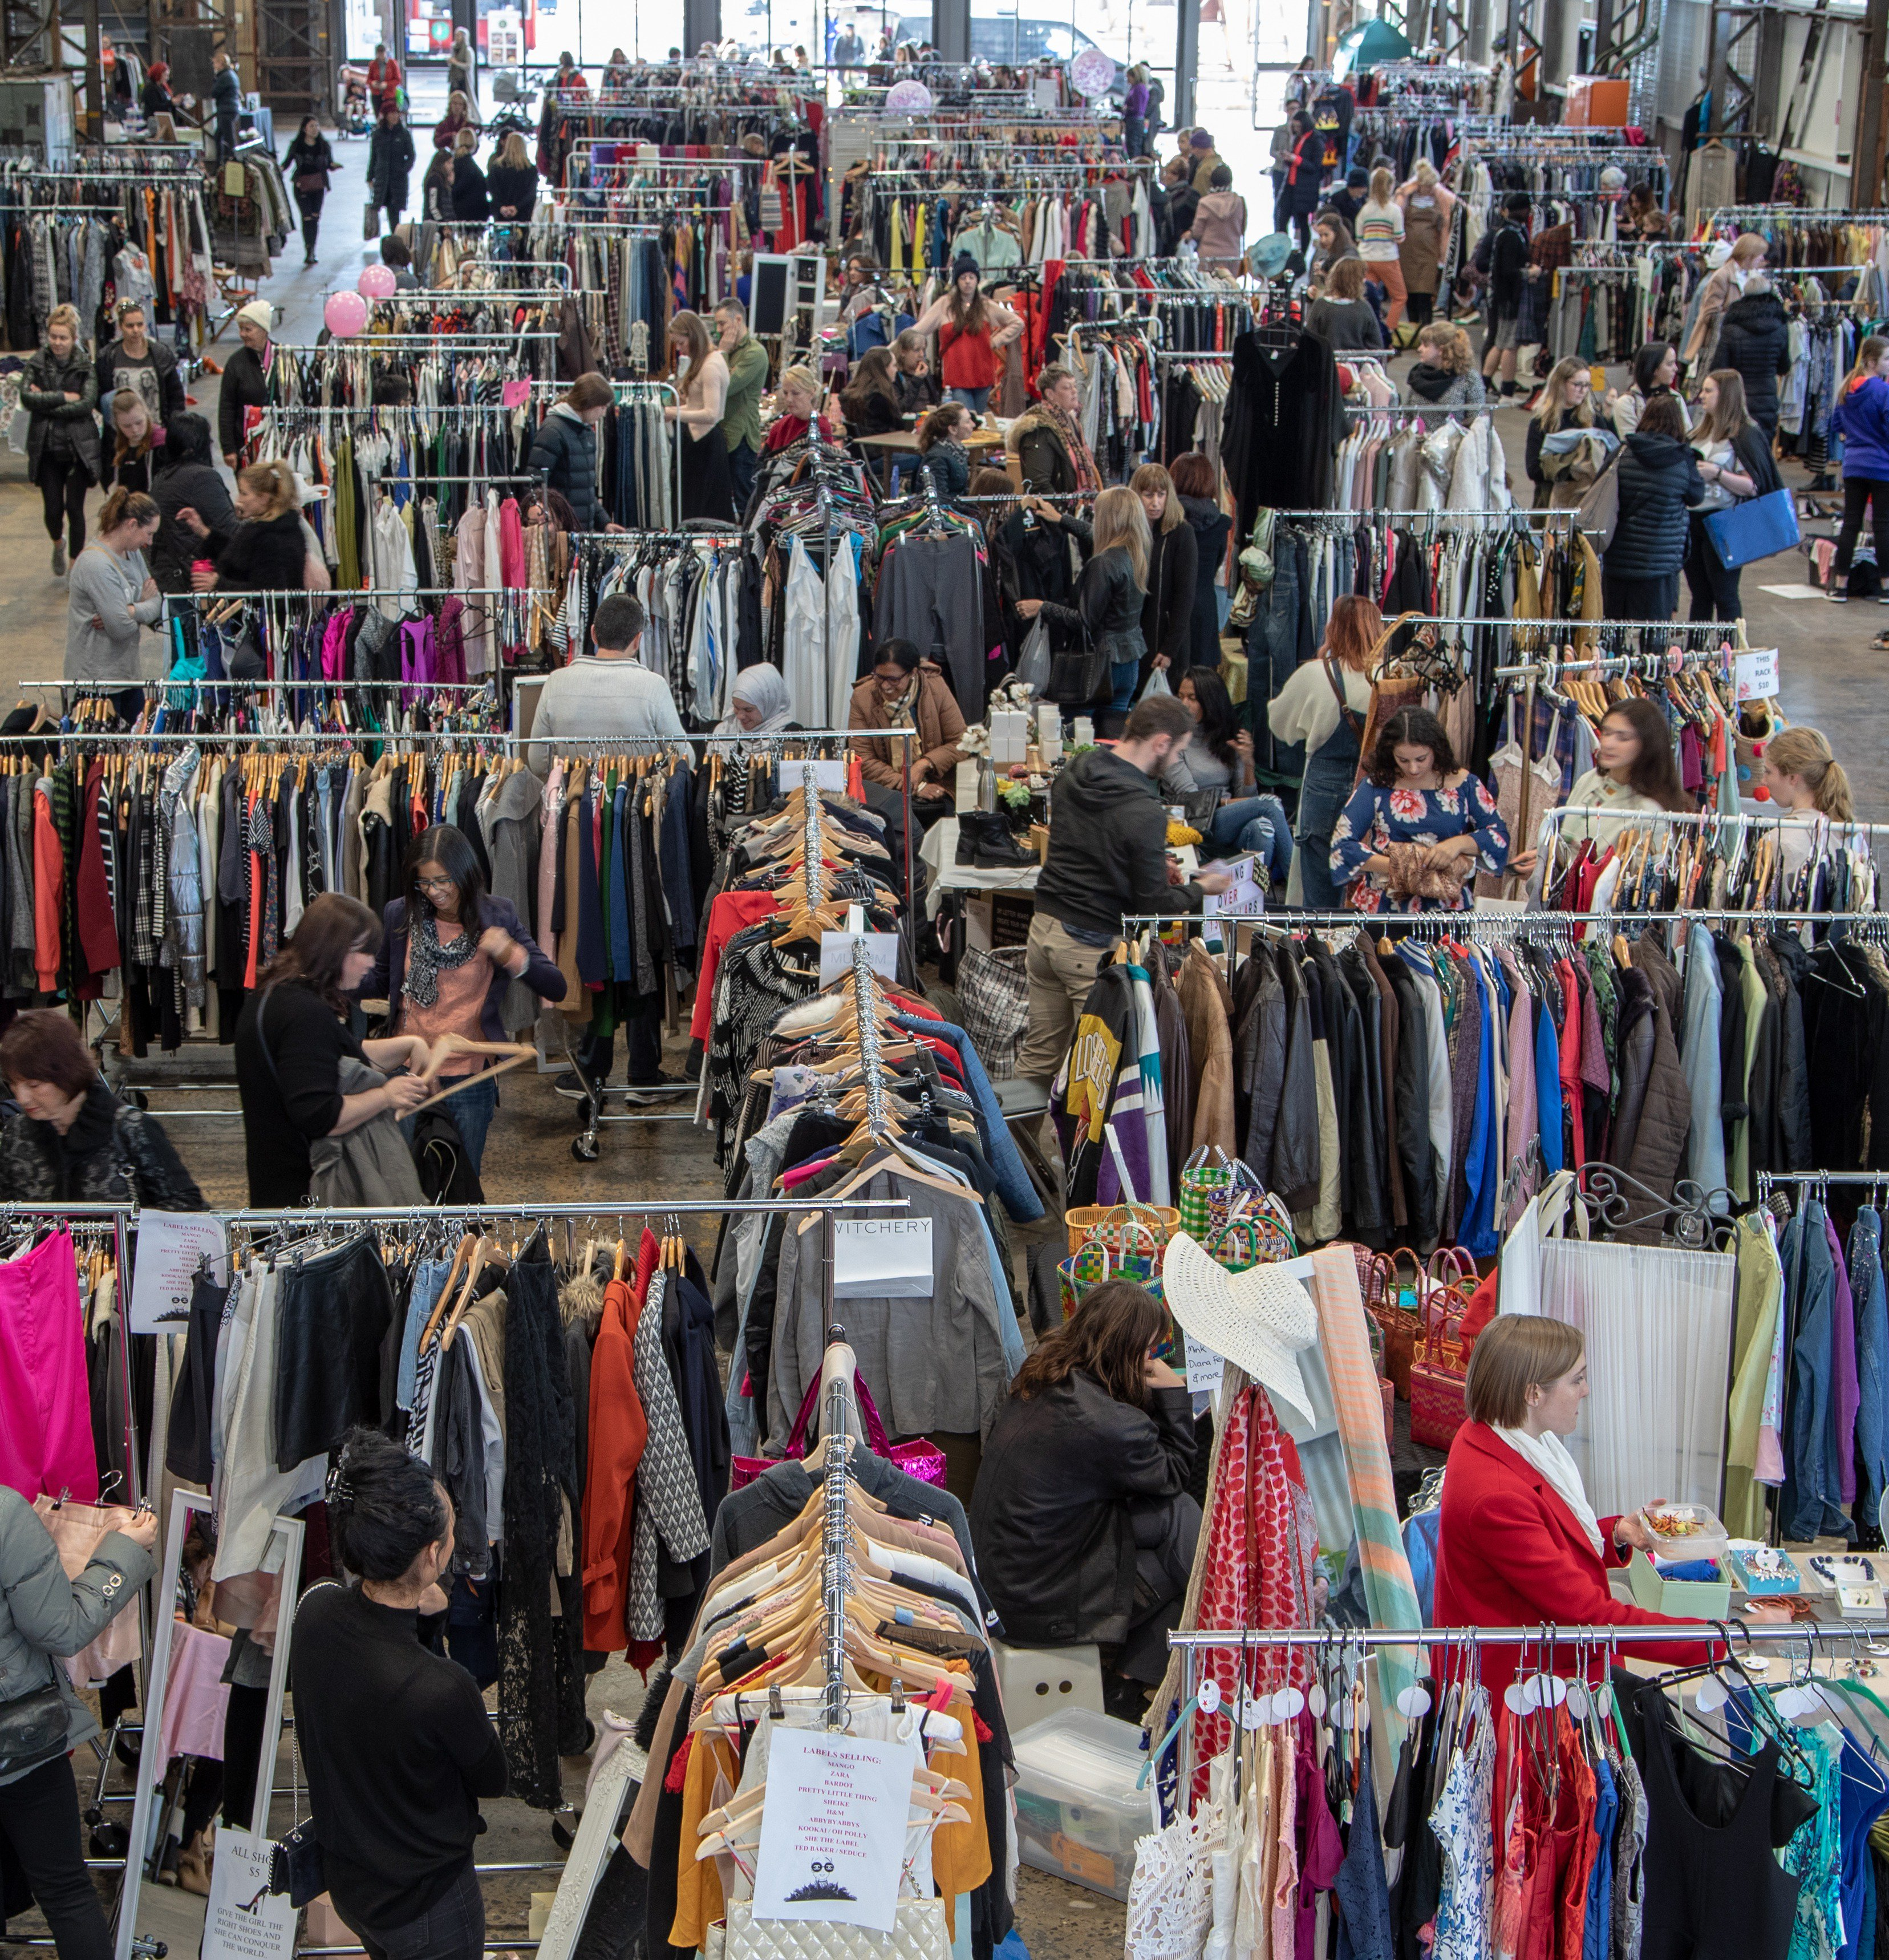 Indoor market of more than 60 stalls selling women's pre-loved fashion and accessories.